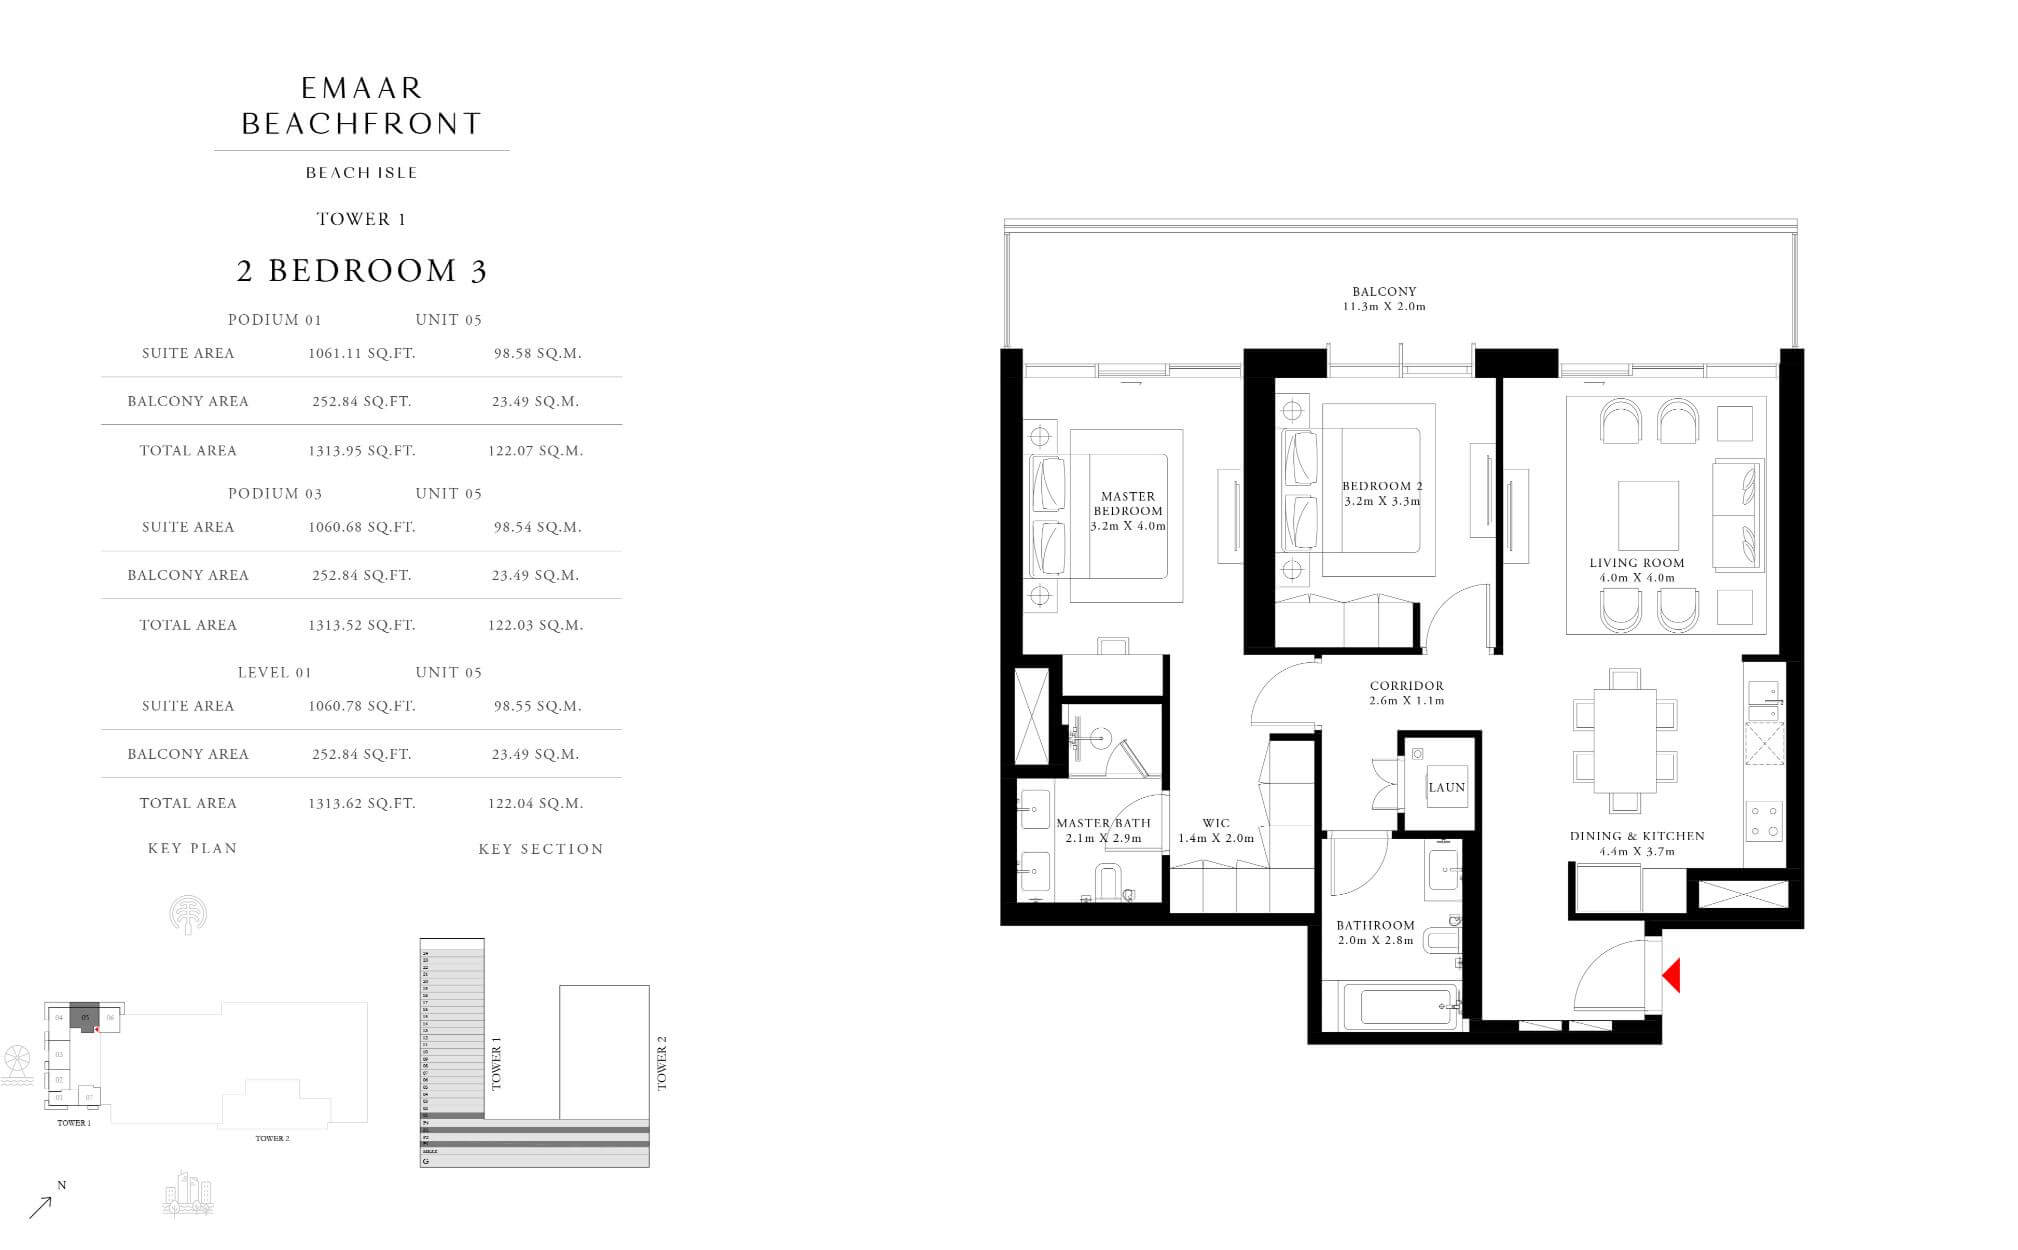 2BR TYPE 3 - TOWER 1